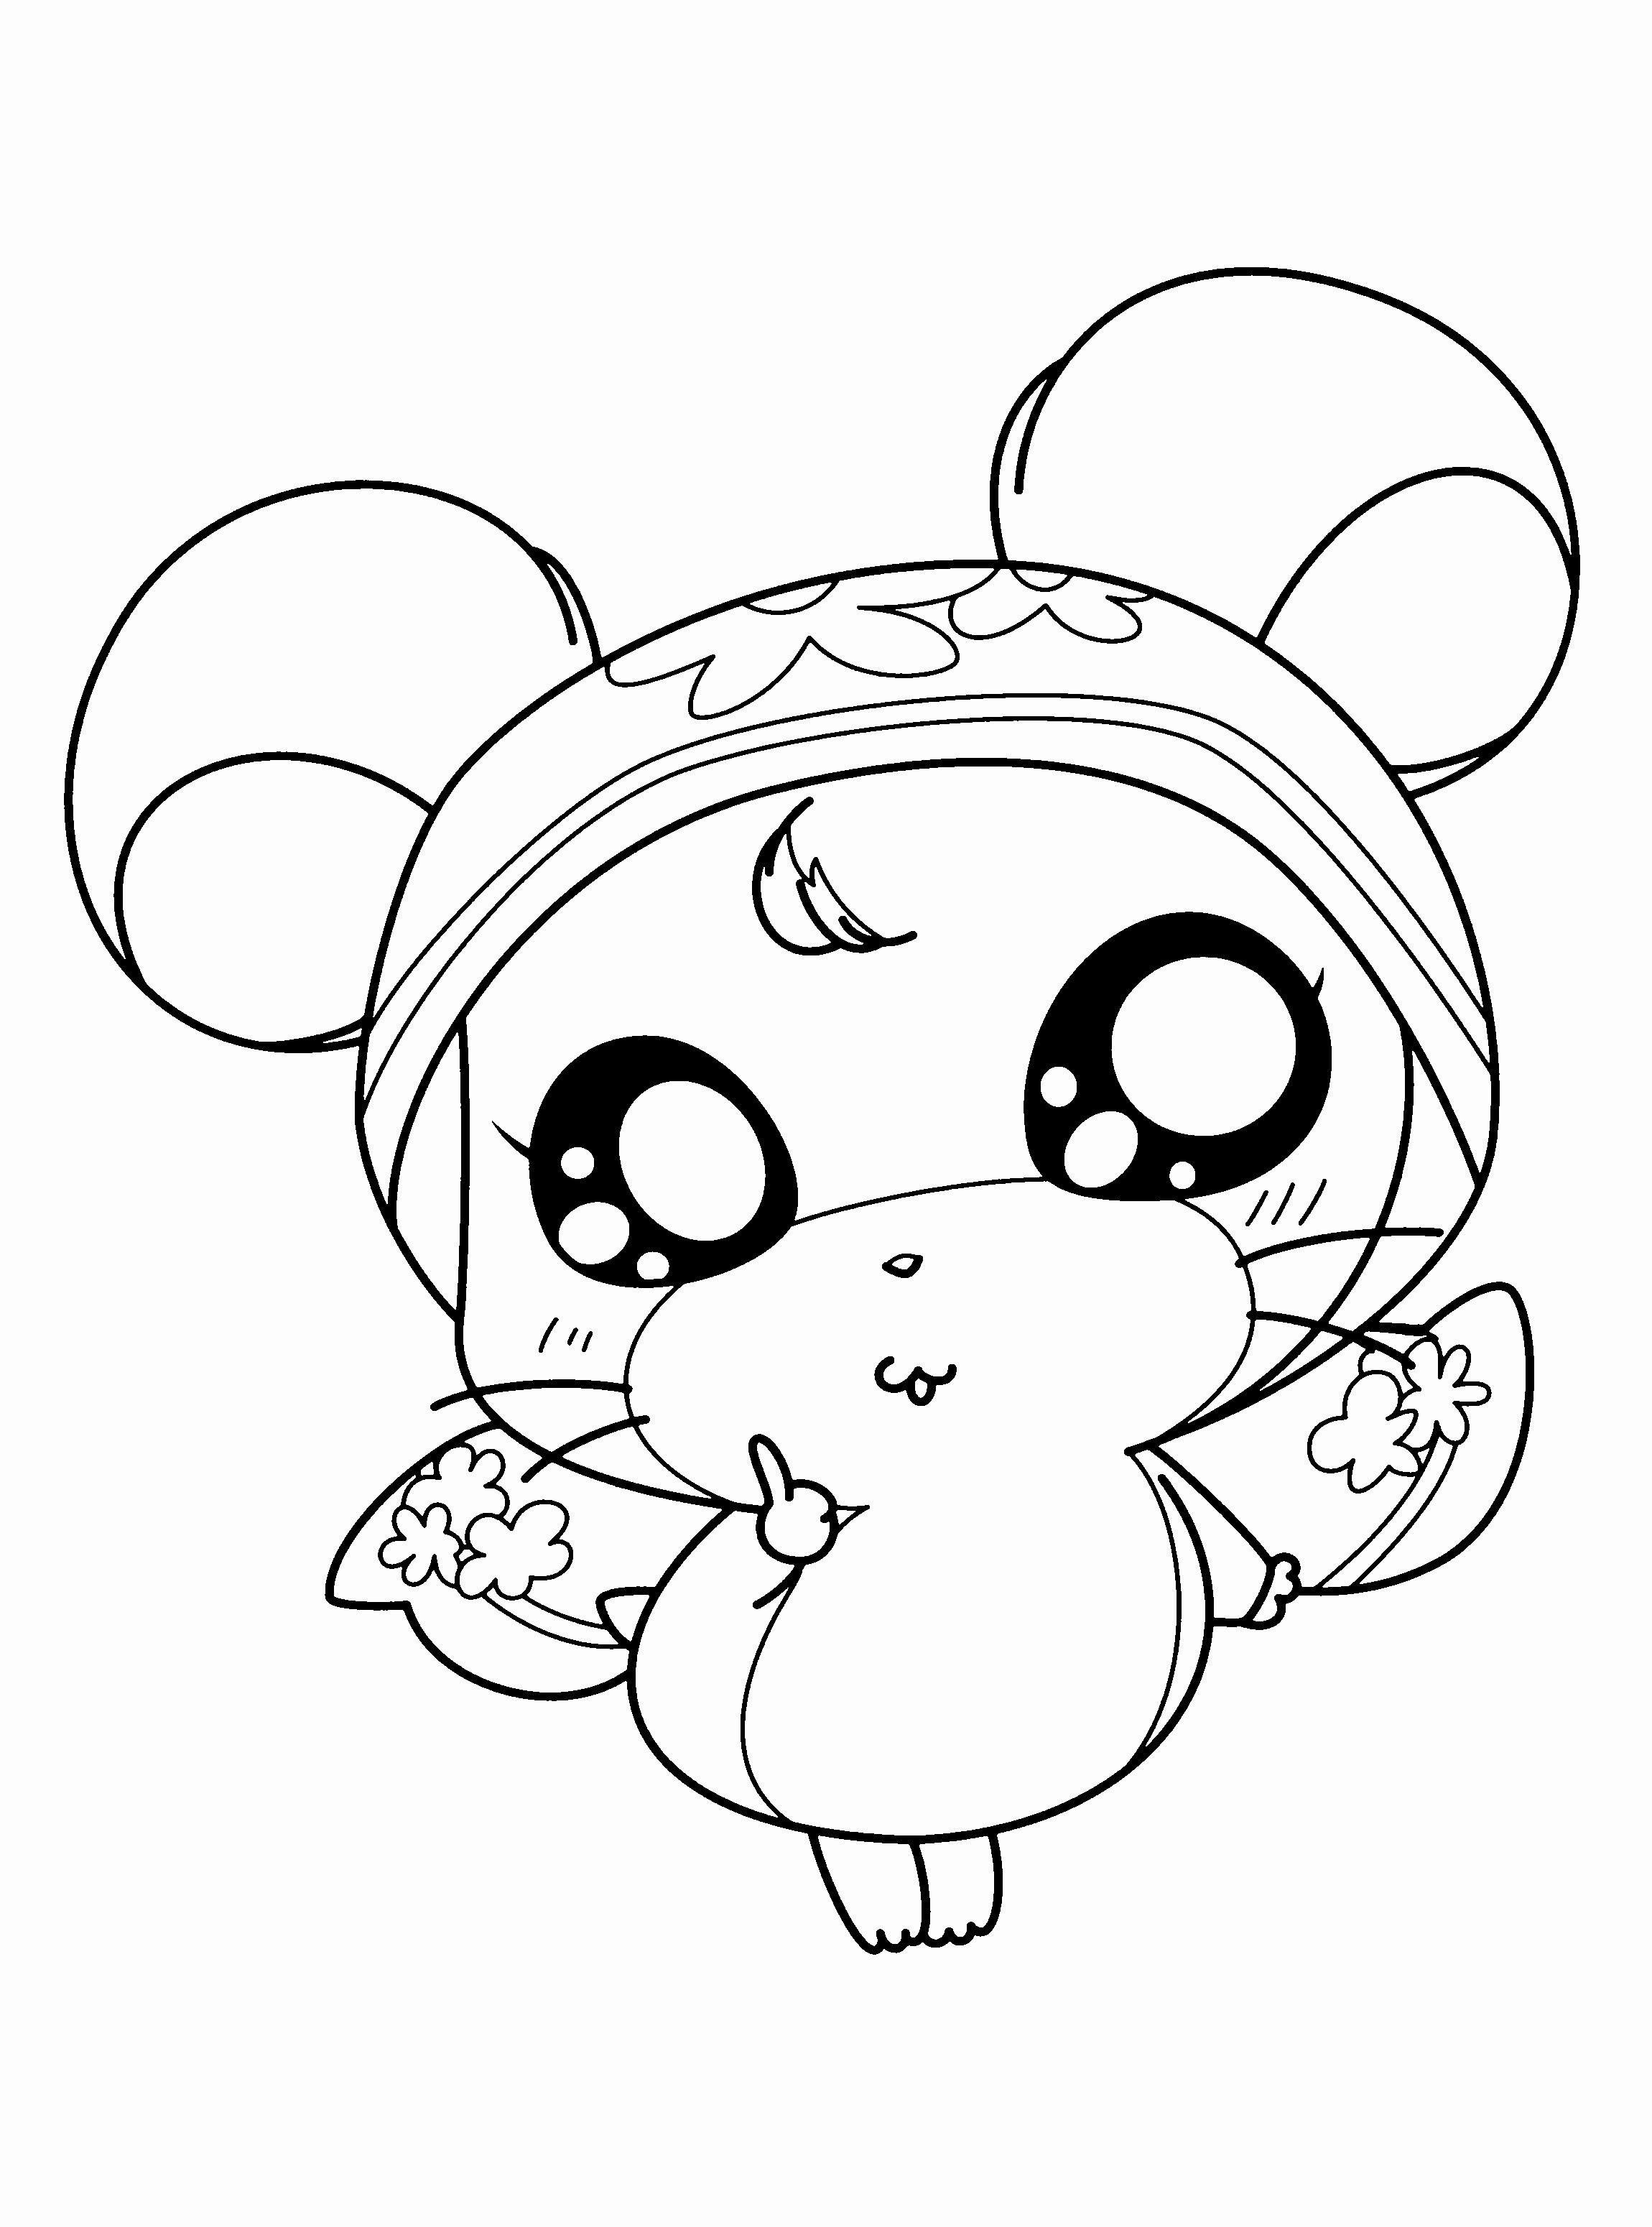 animal coloring pages for kids Collection-Animal Coloring Pages for Kids Unique Printable Coloring Pages for Kids Elegant Coloring Printables 0d 12-q